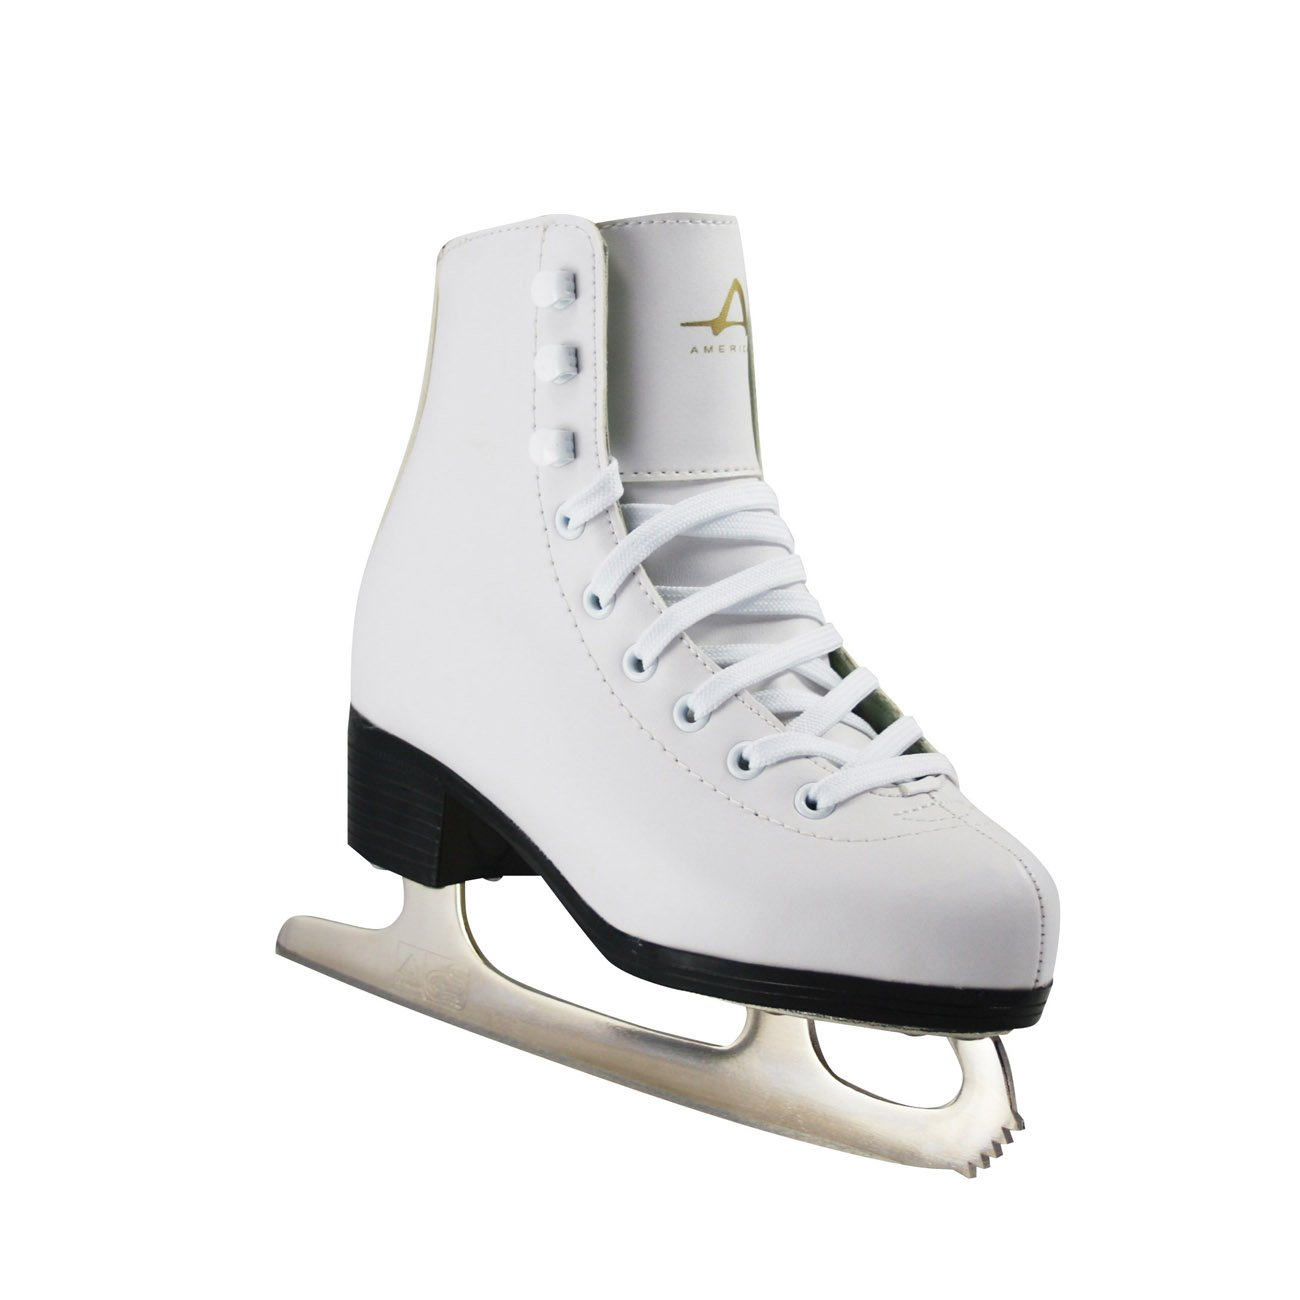 Womens Fashion Sneaker People In The Eyes Skating Shoe